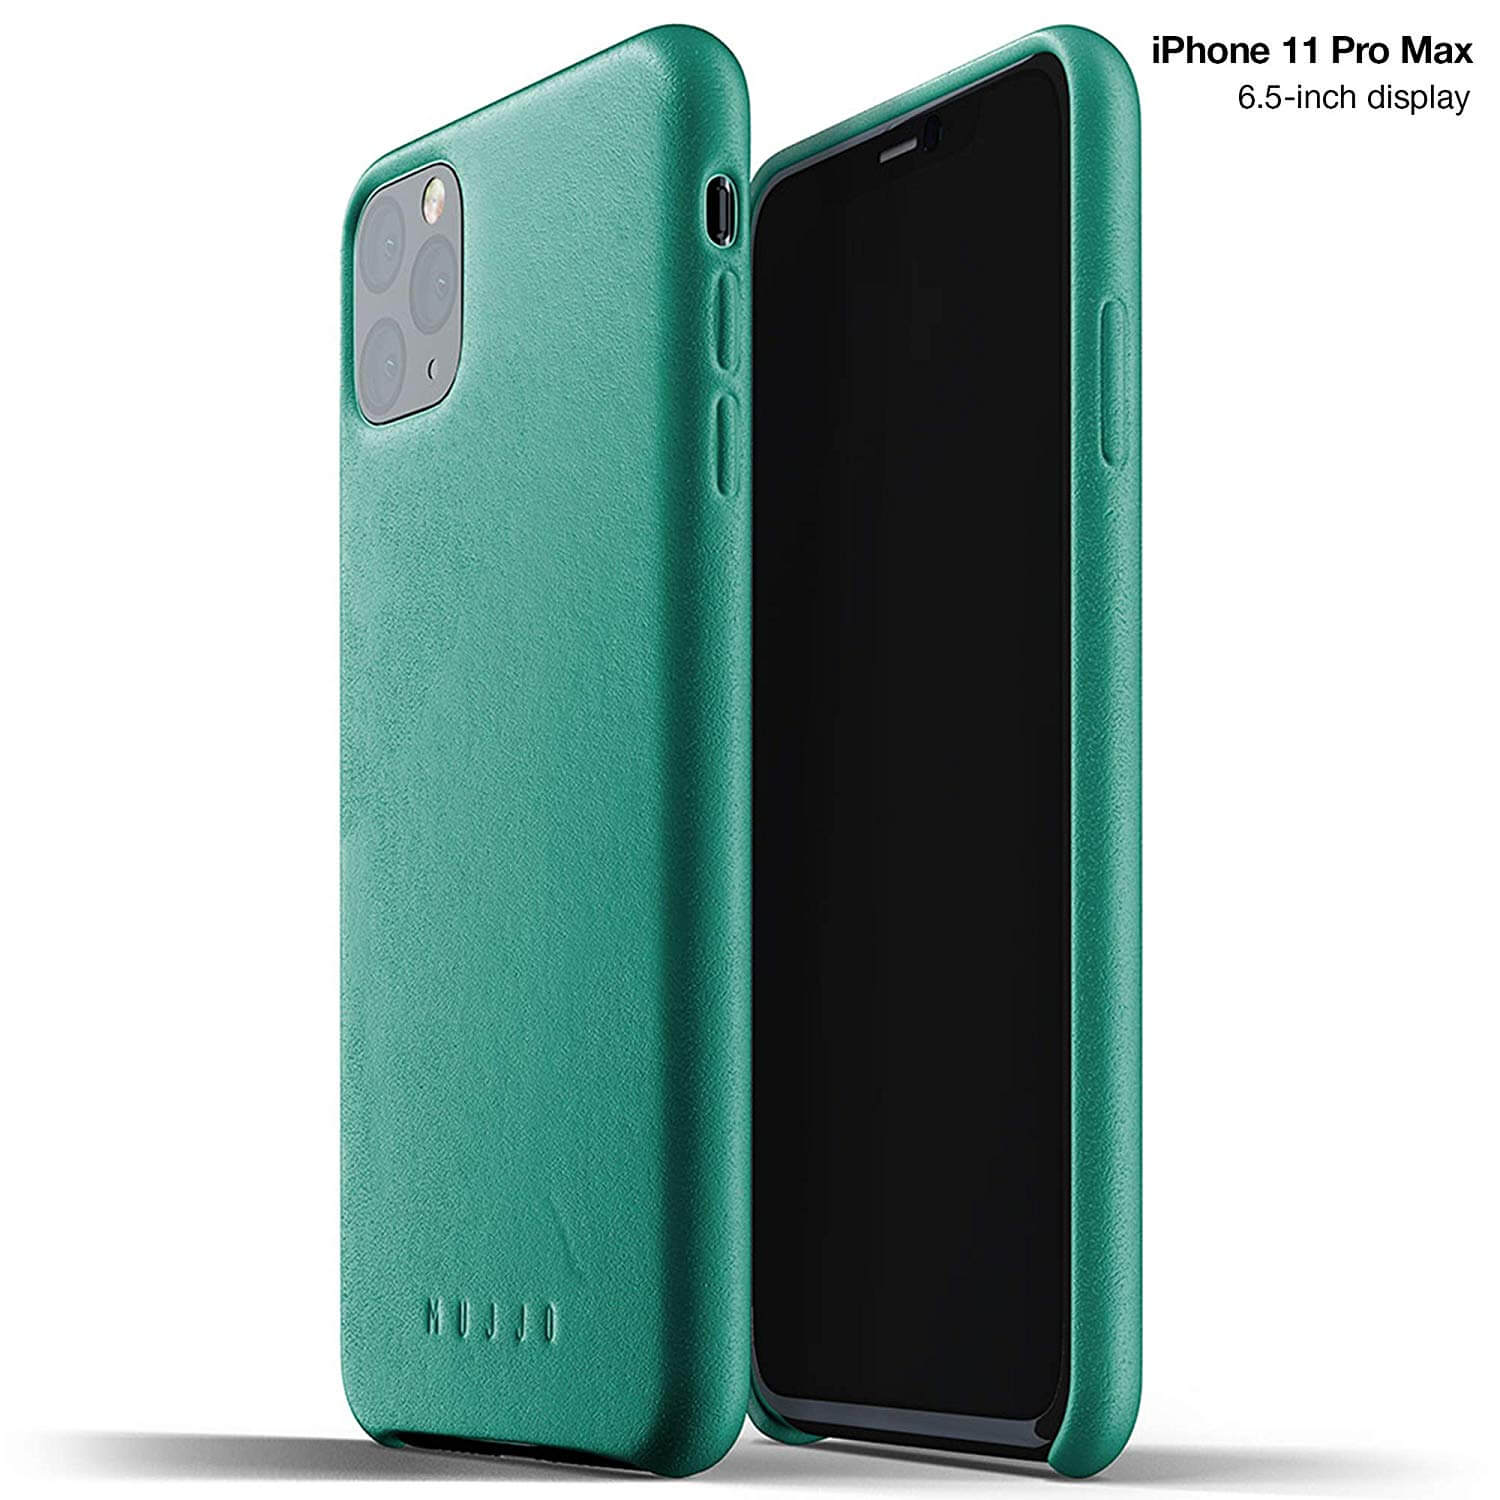 Mujjo Full Leather Case for iPhone 11 Pro Max (alpine green)